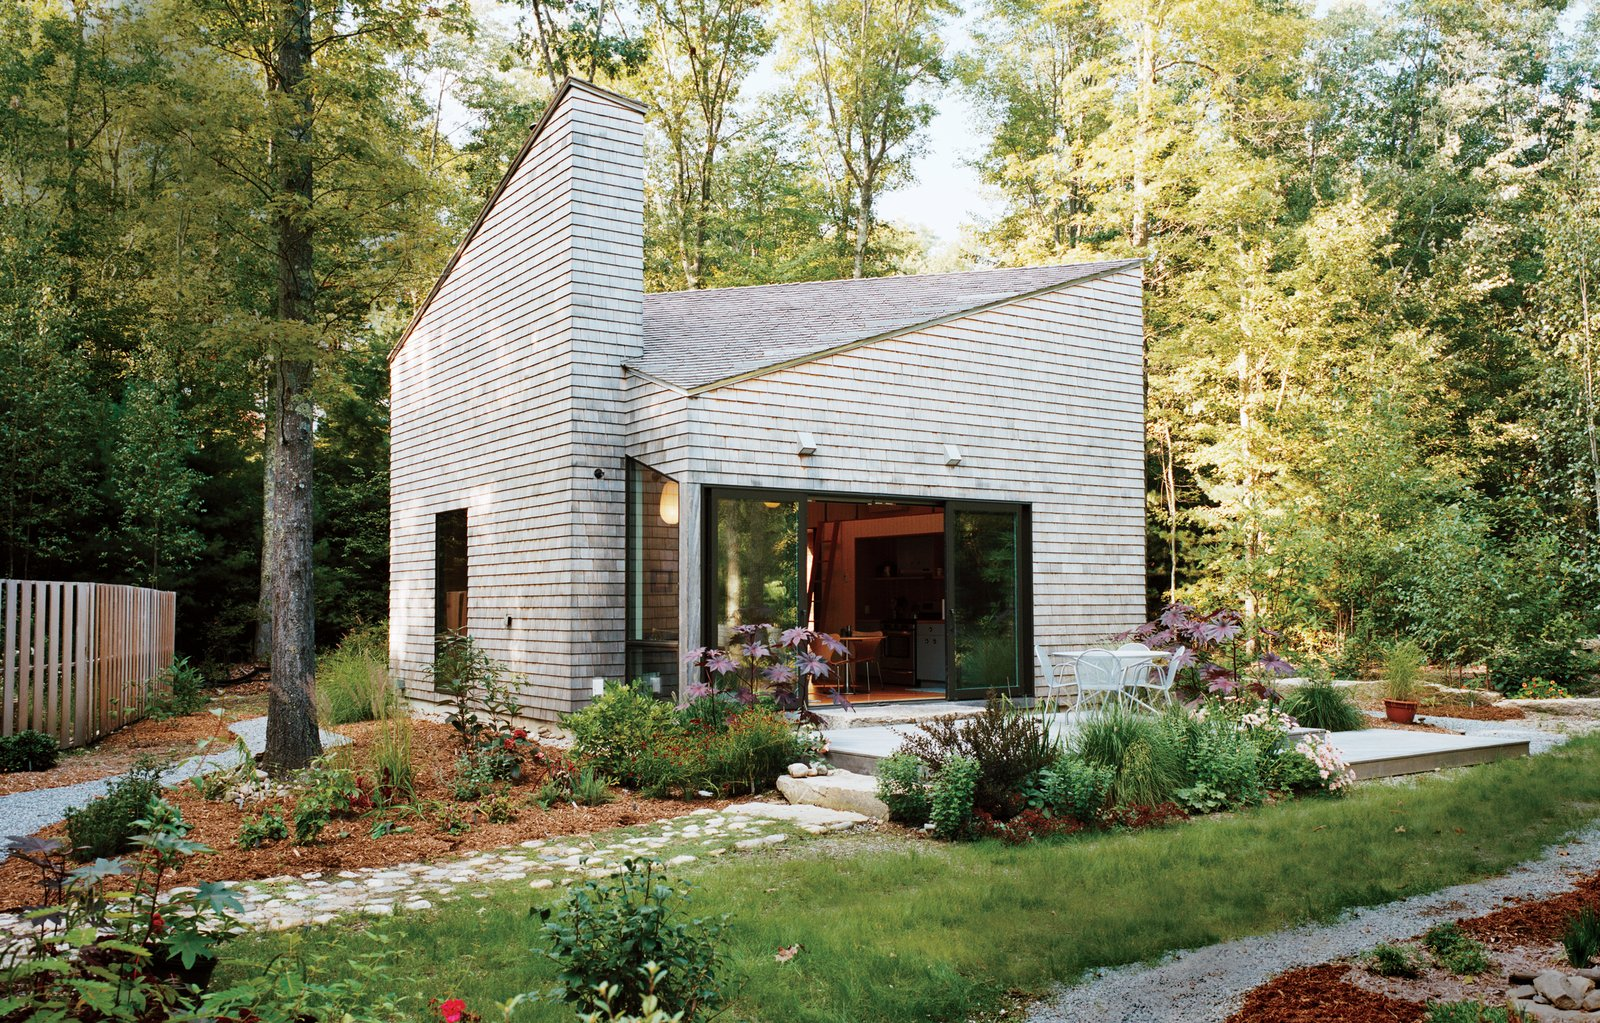 An artist by trade, and gardener by passion, Allison Paschke commissioned Providence-based architecture firm 3SIXØ to build a modest cottage that would allow her to reconnect with nature. She landscaped the home's lush gardens herself. Tagged: Exterior, Tiny Home Building Type, Wood Siding Material, and Shingles Roof Material.  Photo 1 of 12 in This Tiny New England Cottage Is a No-Frills Weekend Hideaway